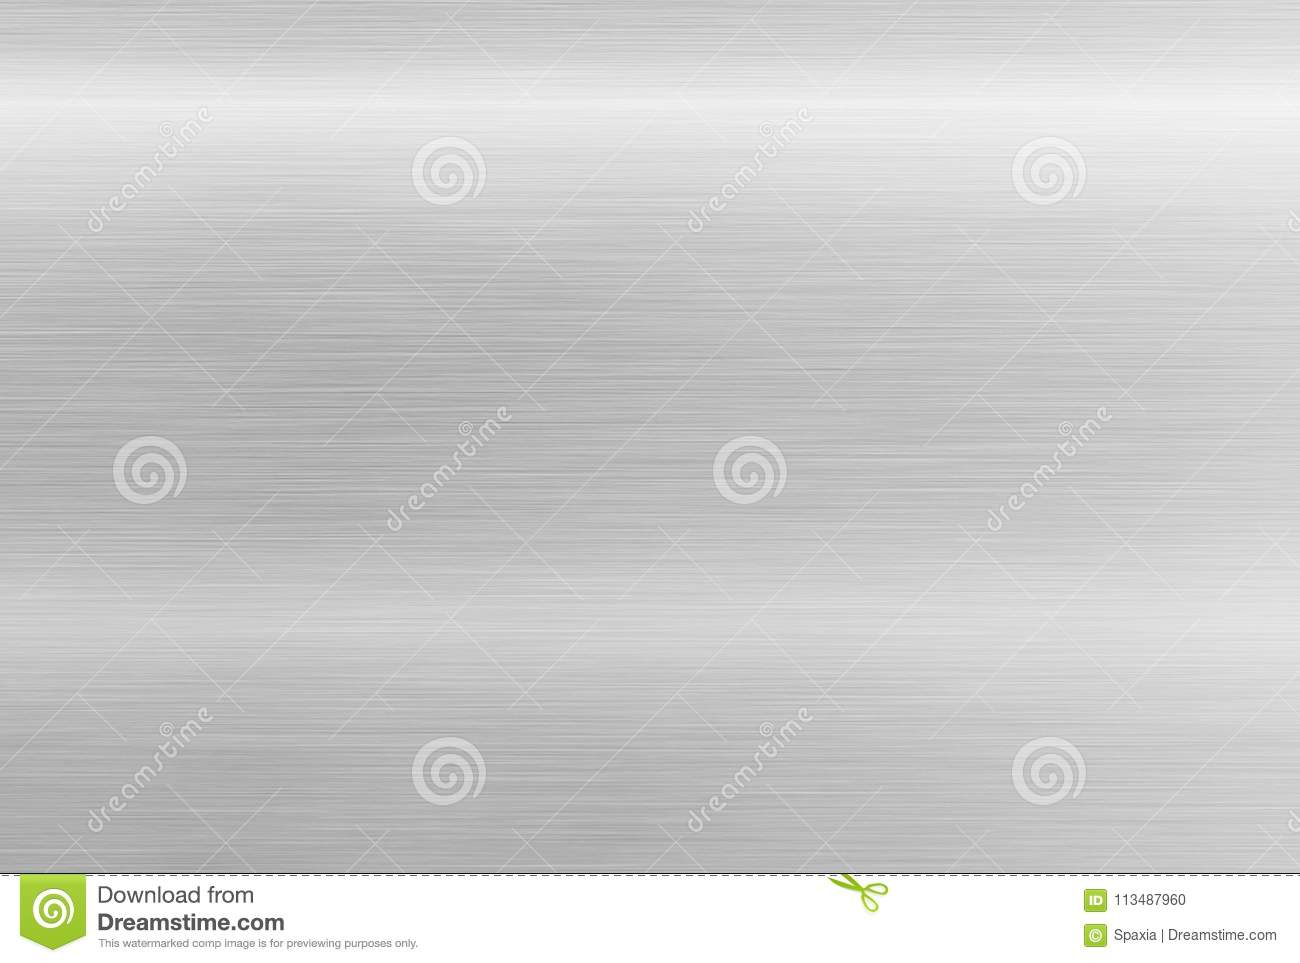 Stainless steel texture. Polished aluminum background